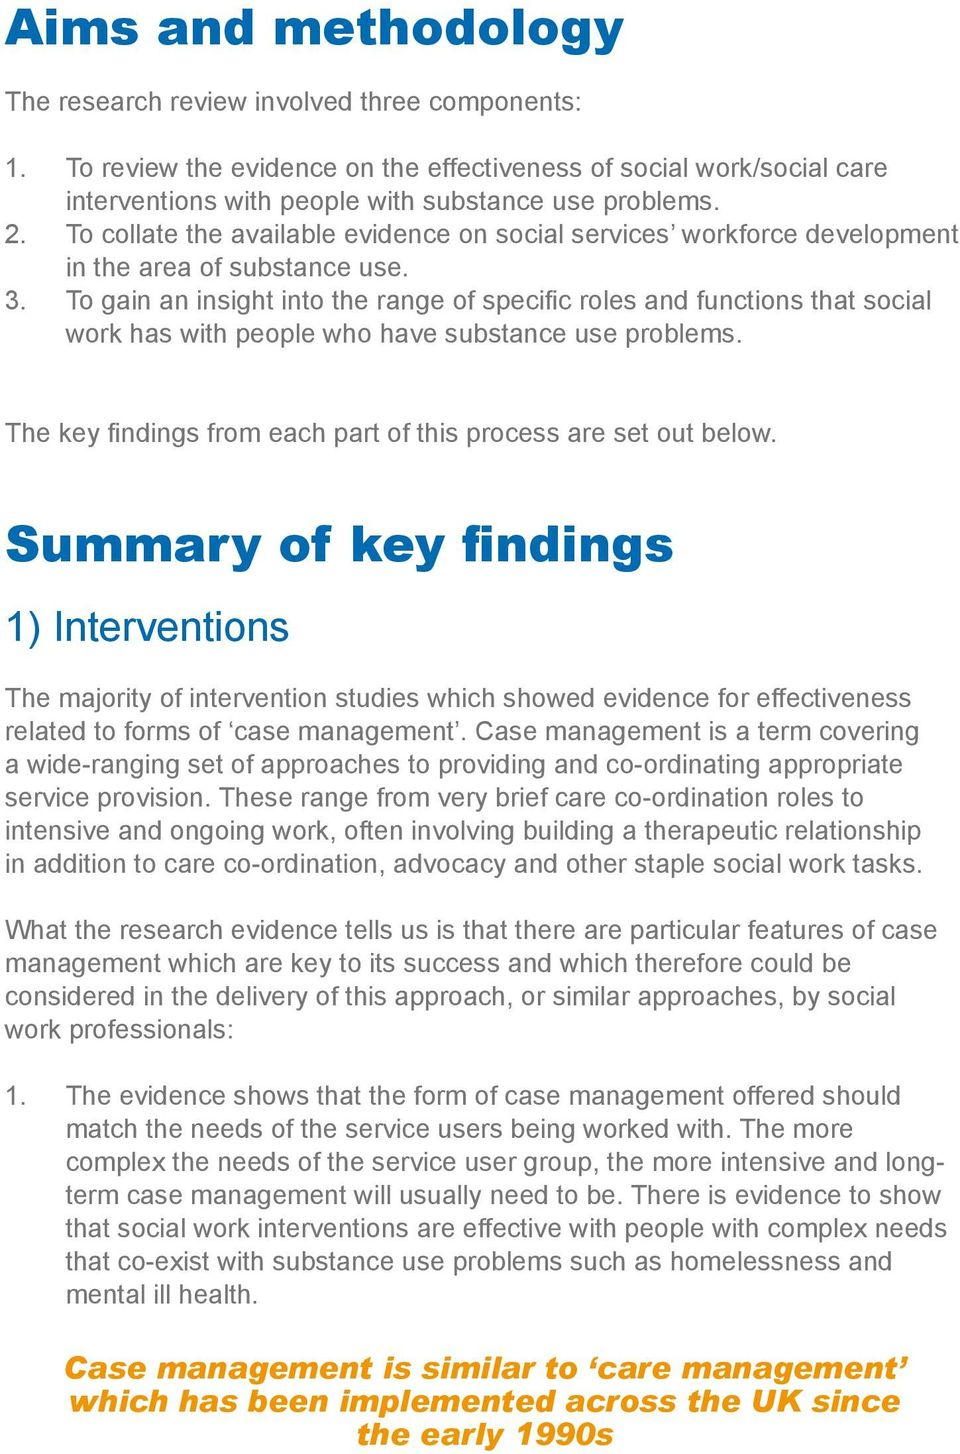 To gain an insight into the range of specific roles and functions that social work has with people who have substance use problems. The key findings from each part of this process are set out below.